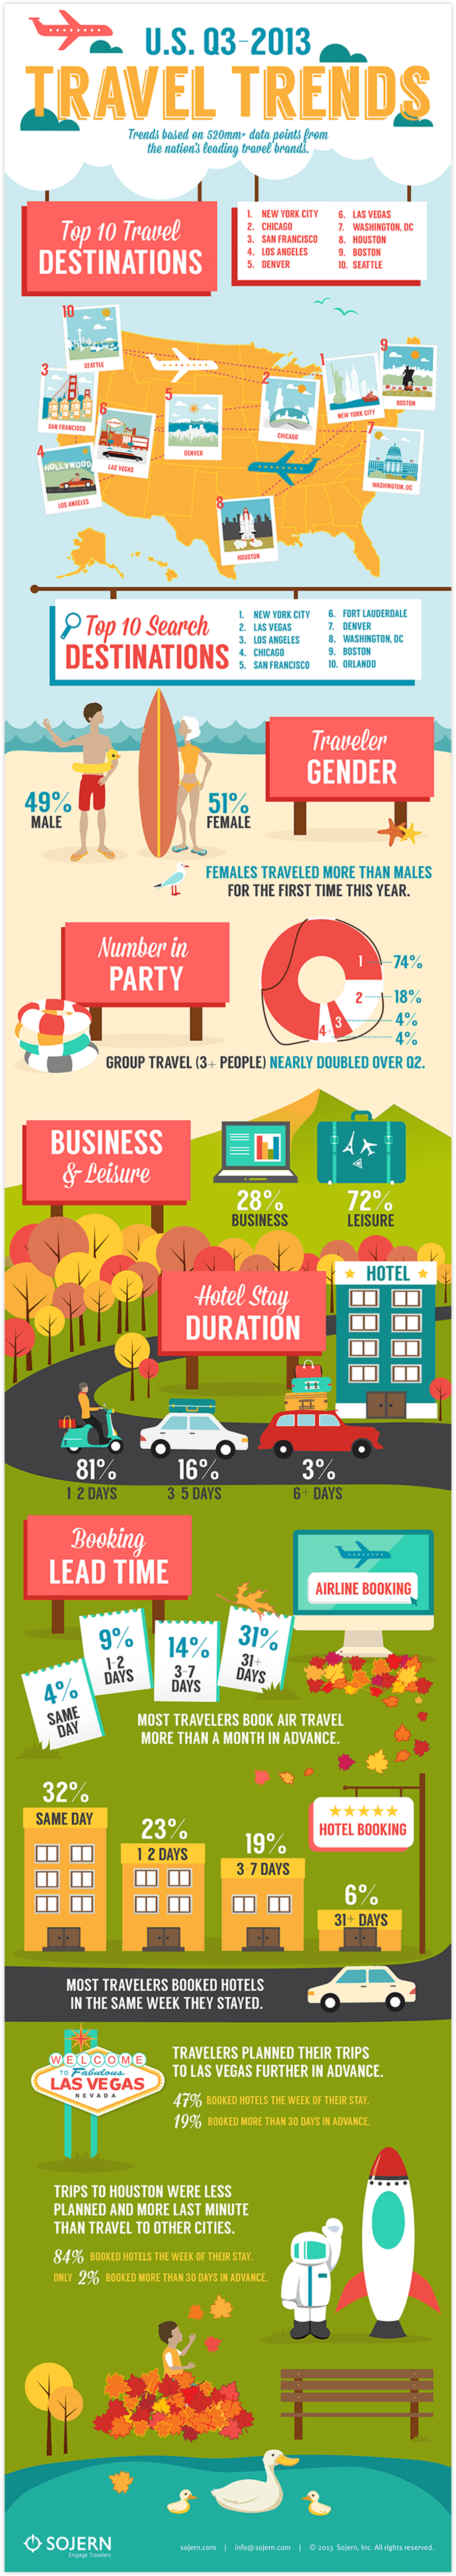 U.S. Travel Trends, Q3 2013	 Infographic